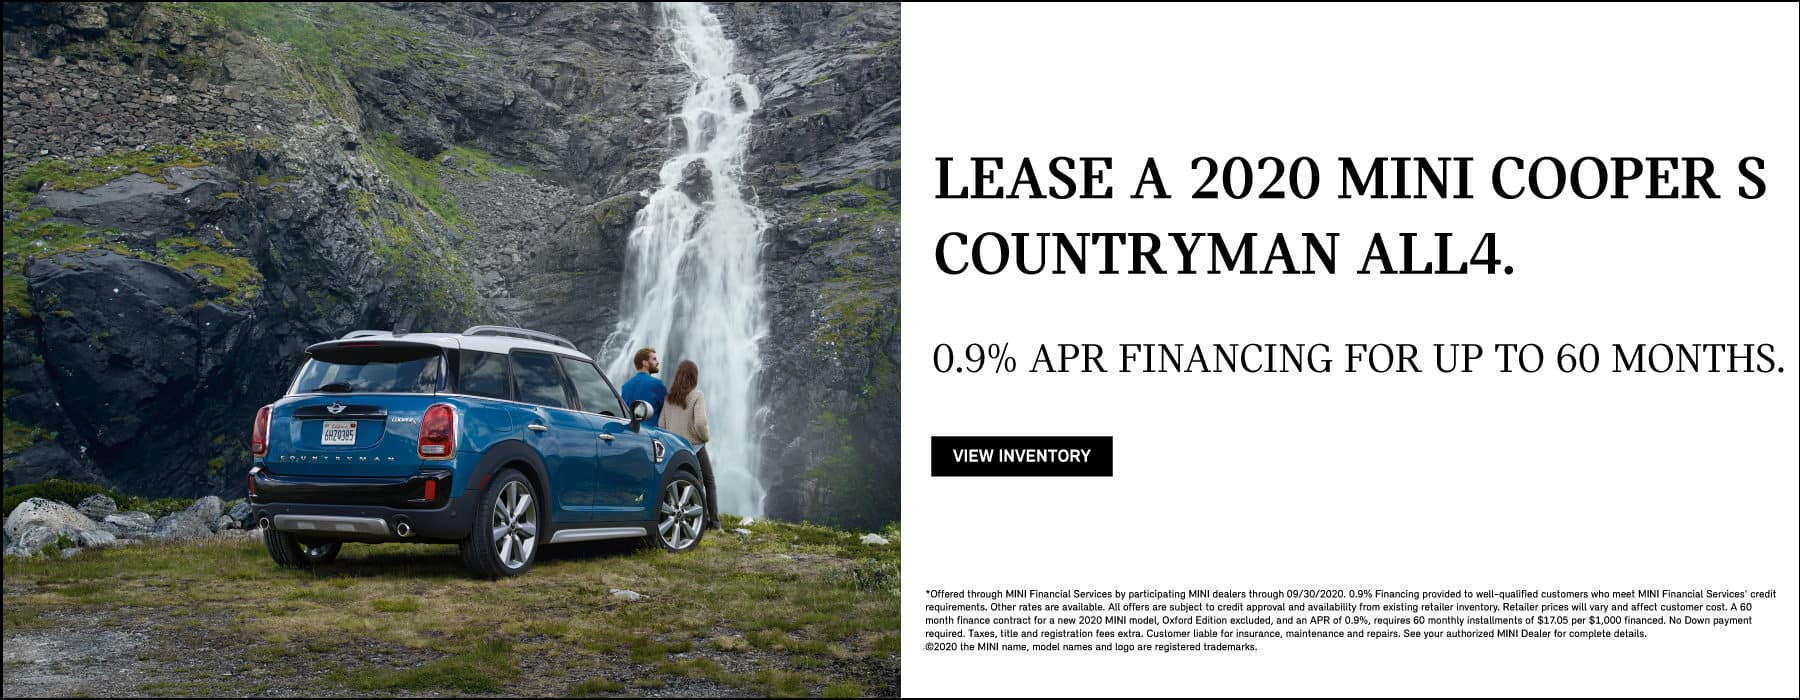 LEASE A 2020 MINI COOPER S COUNTRYMAN ALL4 . 0.9% FINANCING FOR UP TO 60 MONTHS